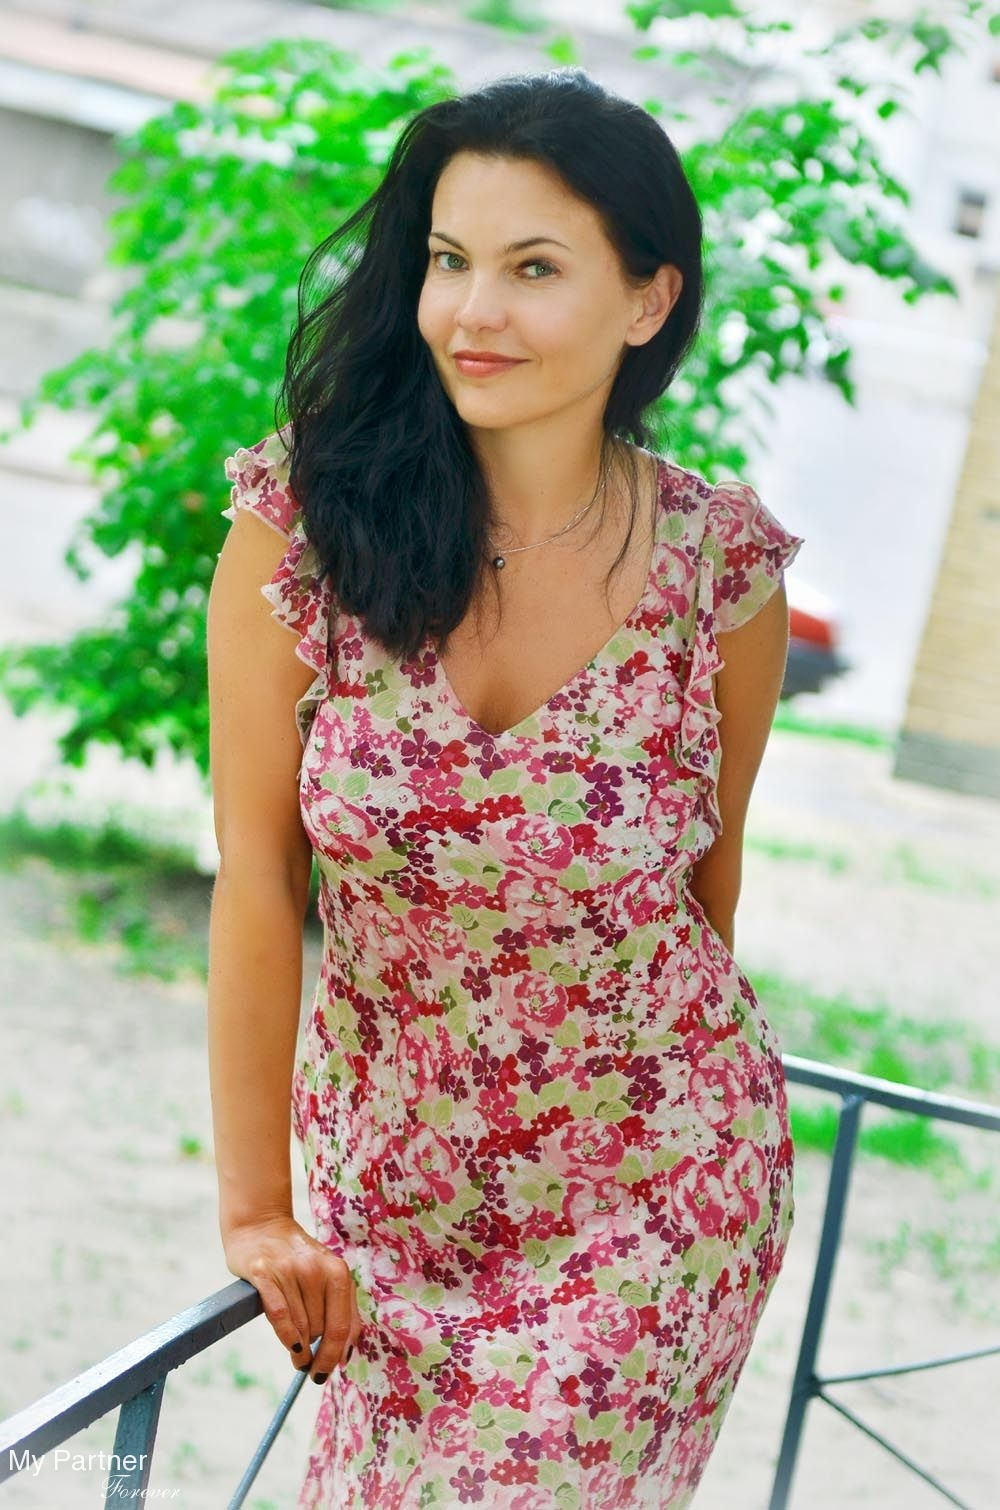 Datingsite to Meet Pretty Ukrainian Girl Olga from Kharkov, Ukraine